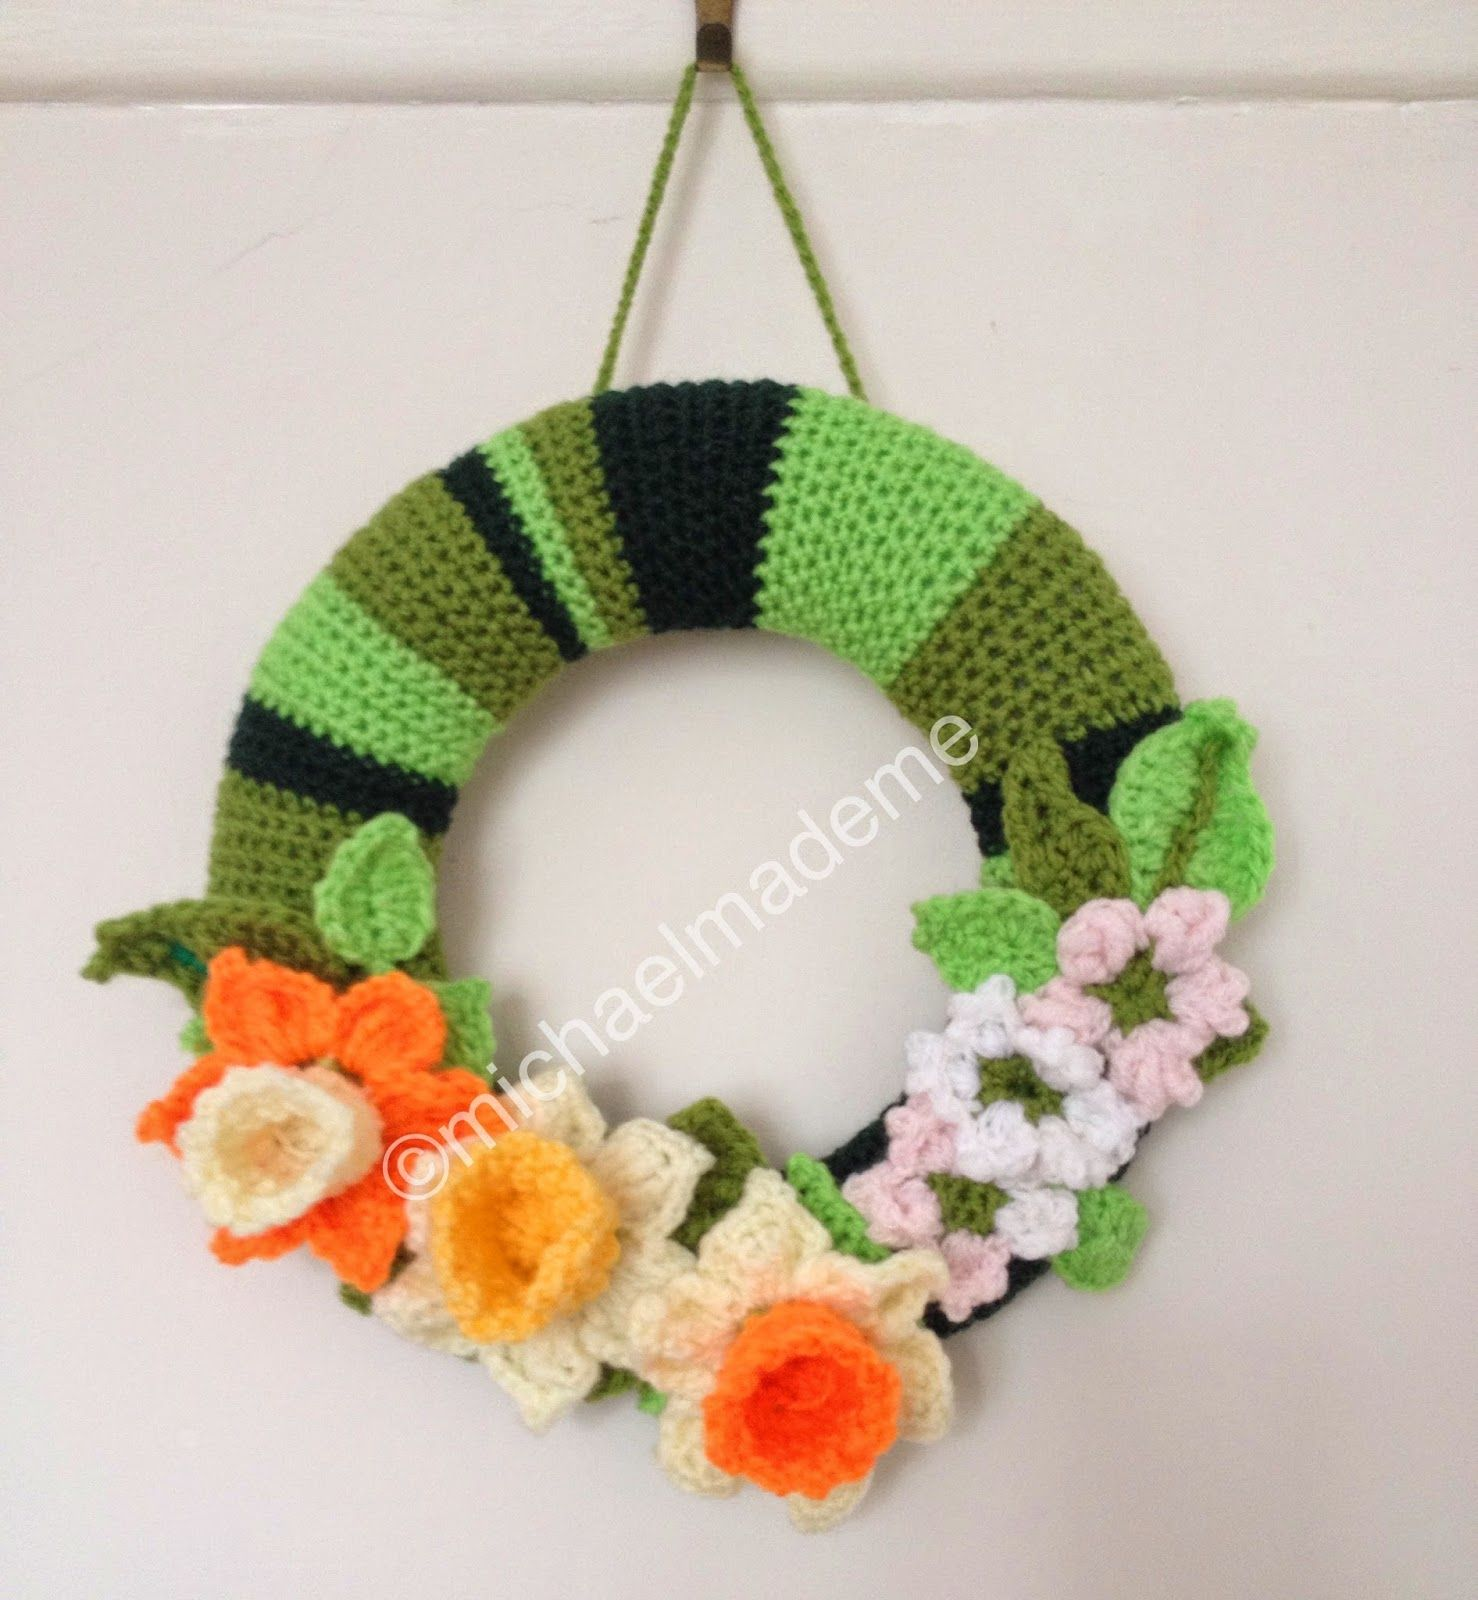 Crochet Spring Wreath Tutorial: michaelmademe